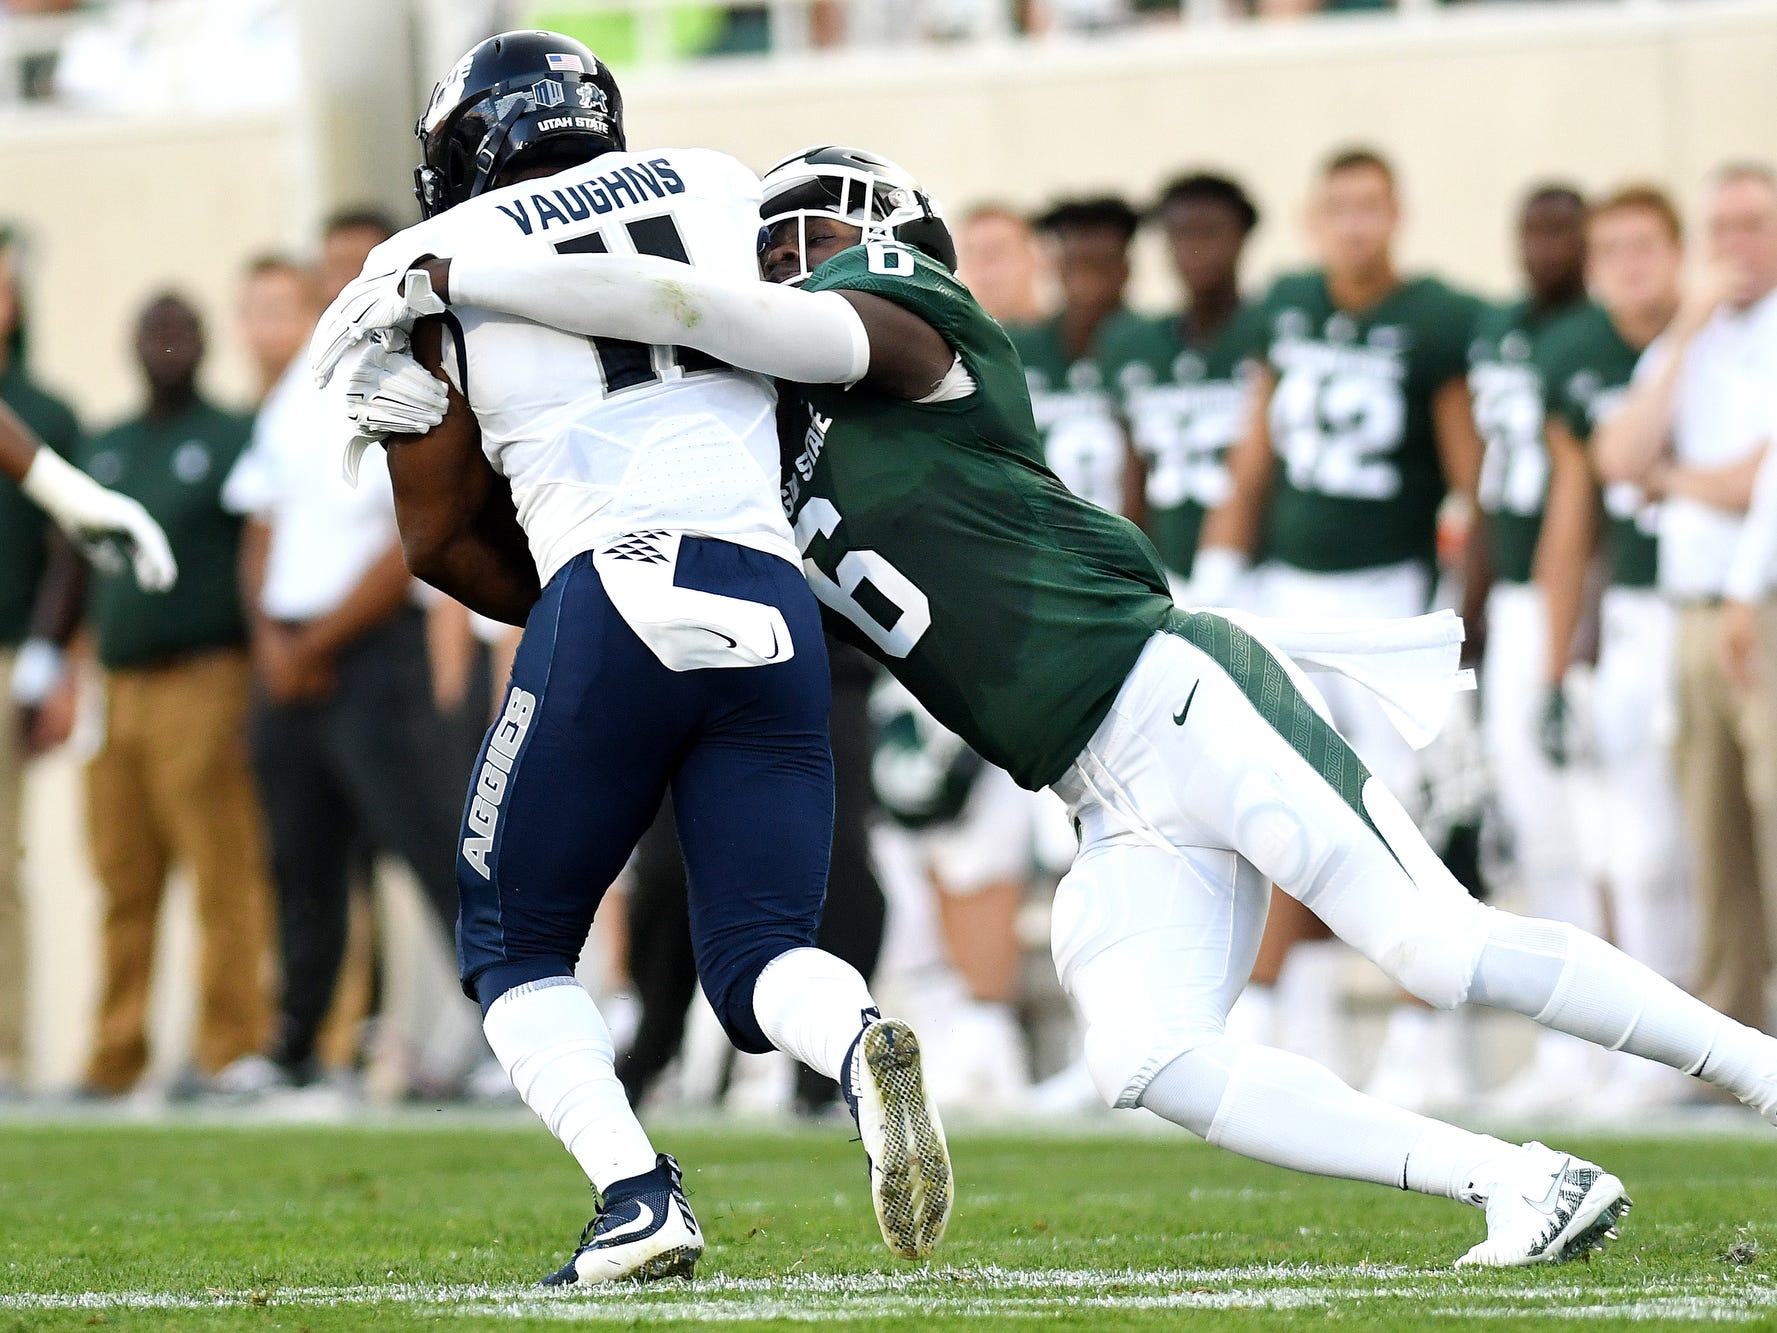 Michigan State's David Dowell, right, tackles Utah State's Aaren Vaughns during the first quarter on Friday, Aug. 31, 2018, at Spartan Stadium in East Lansing.